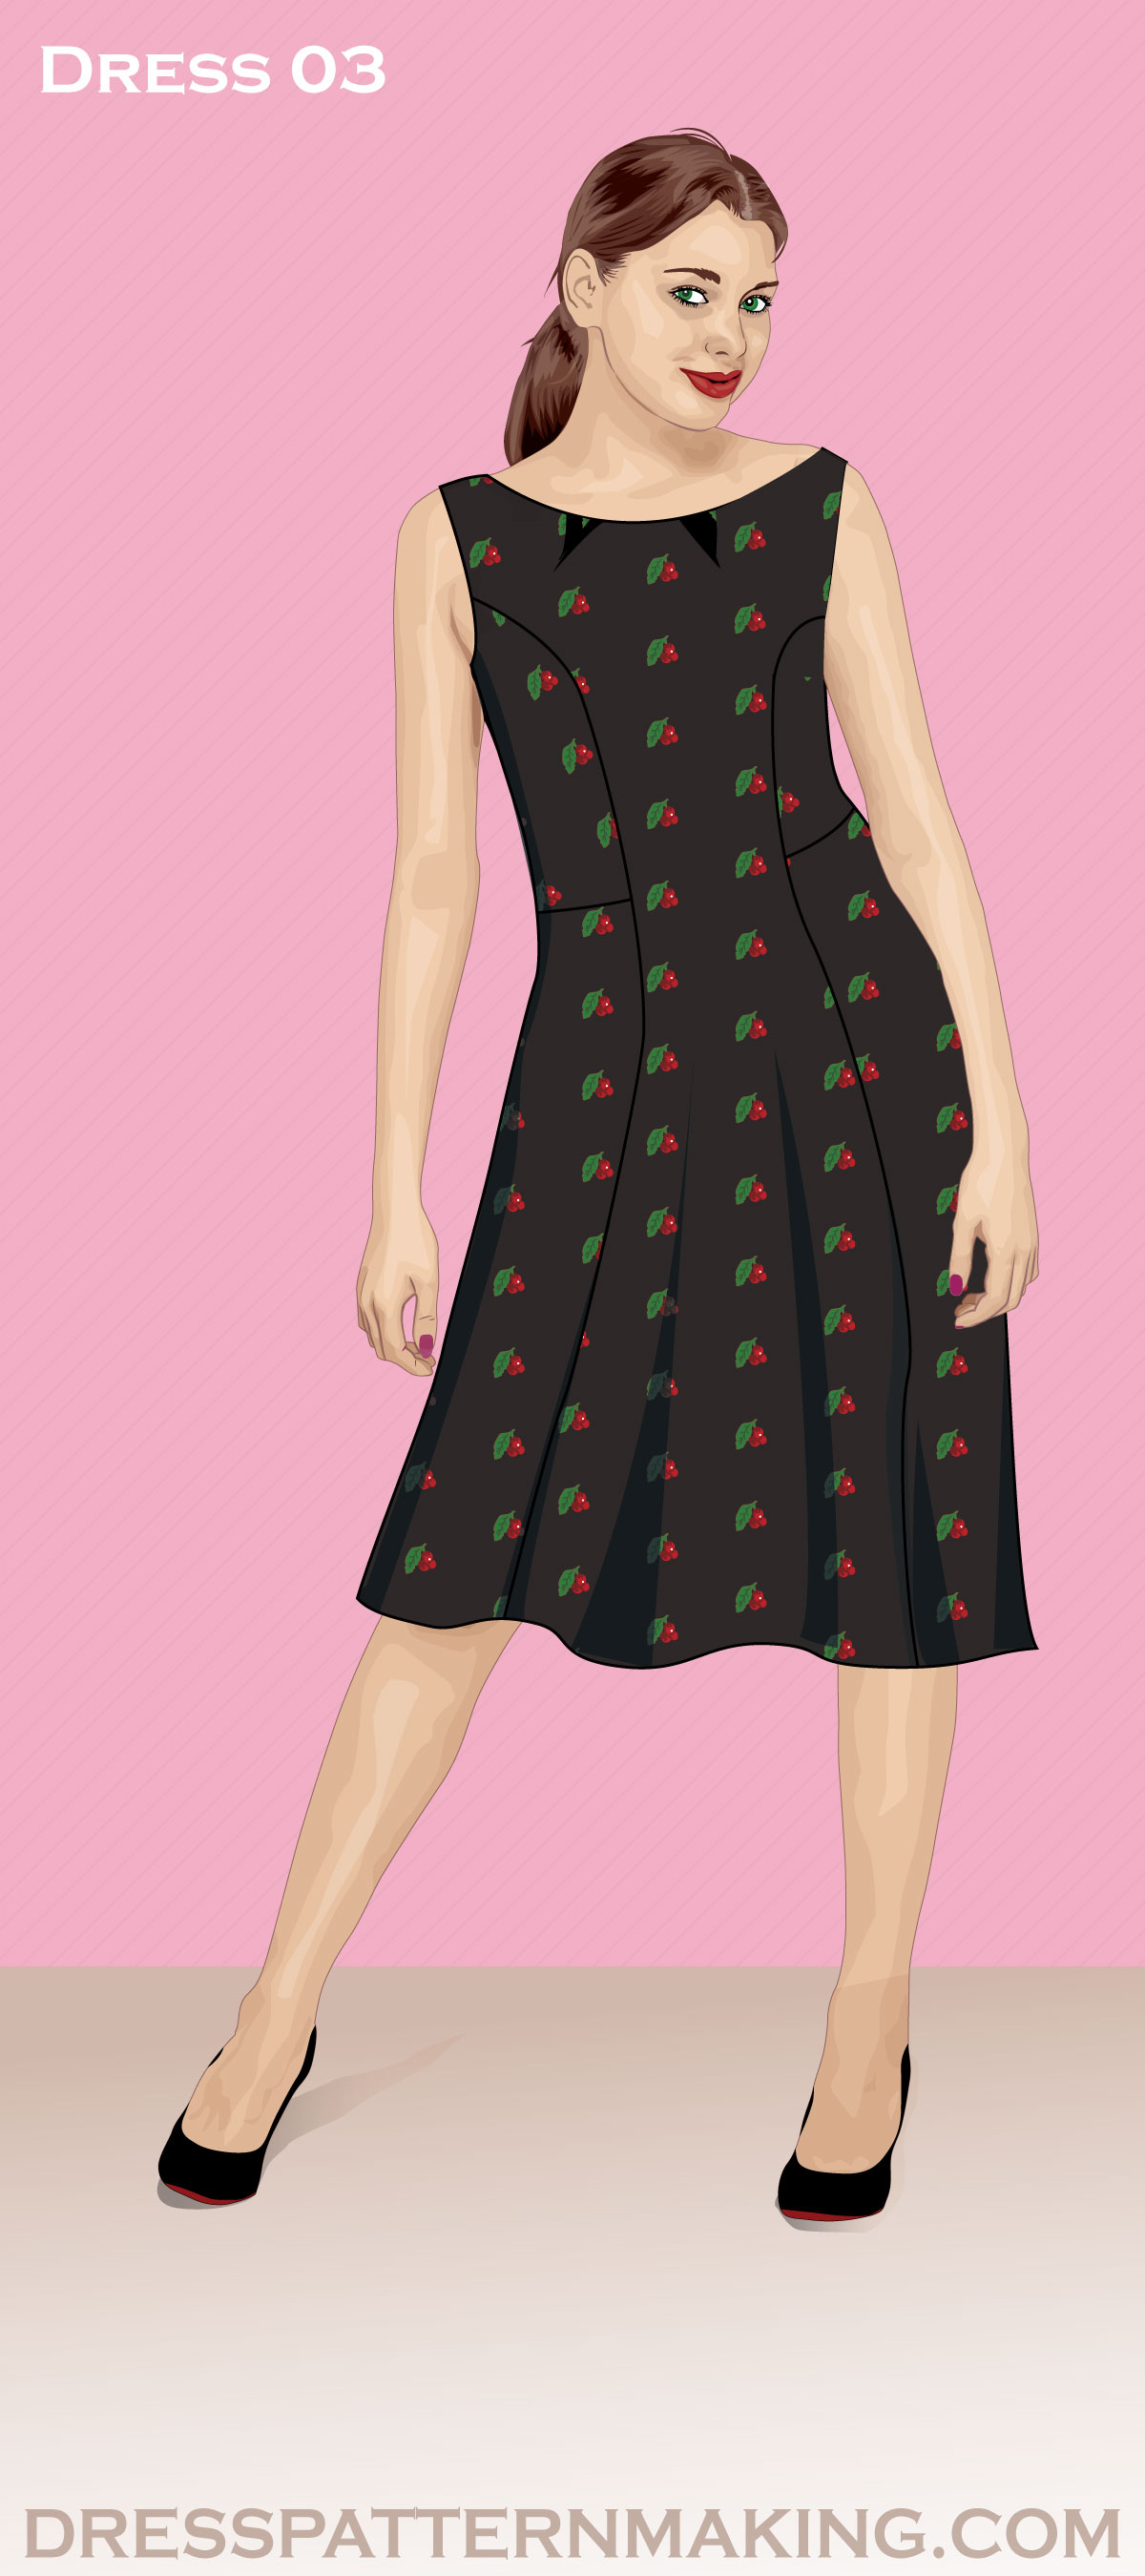 Dress-003 (Description)